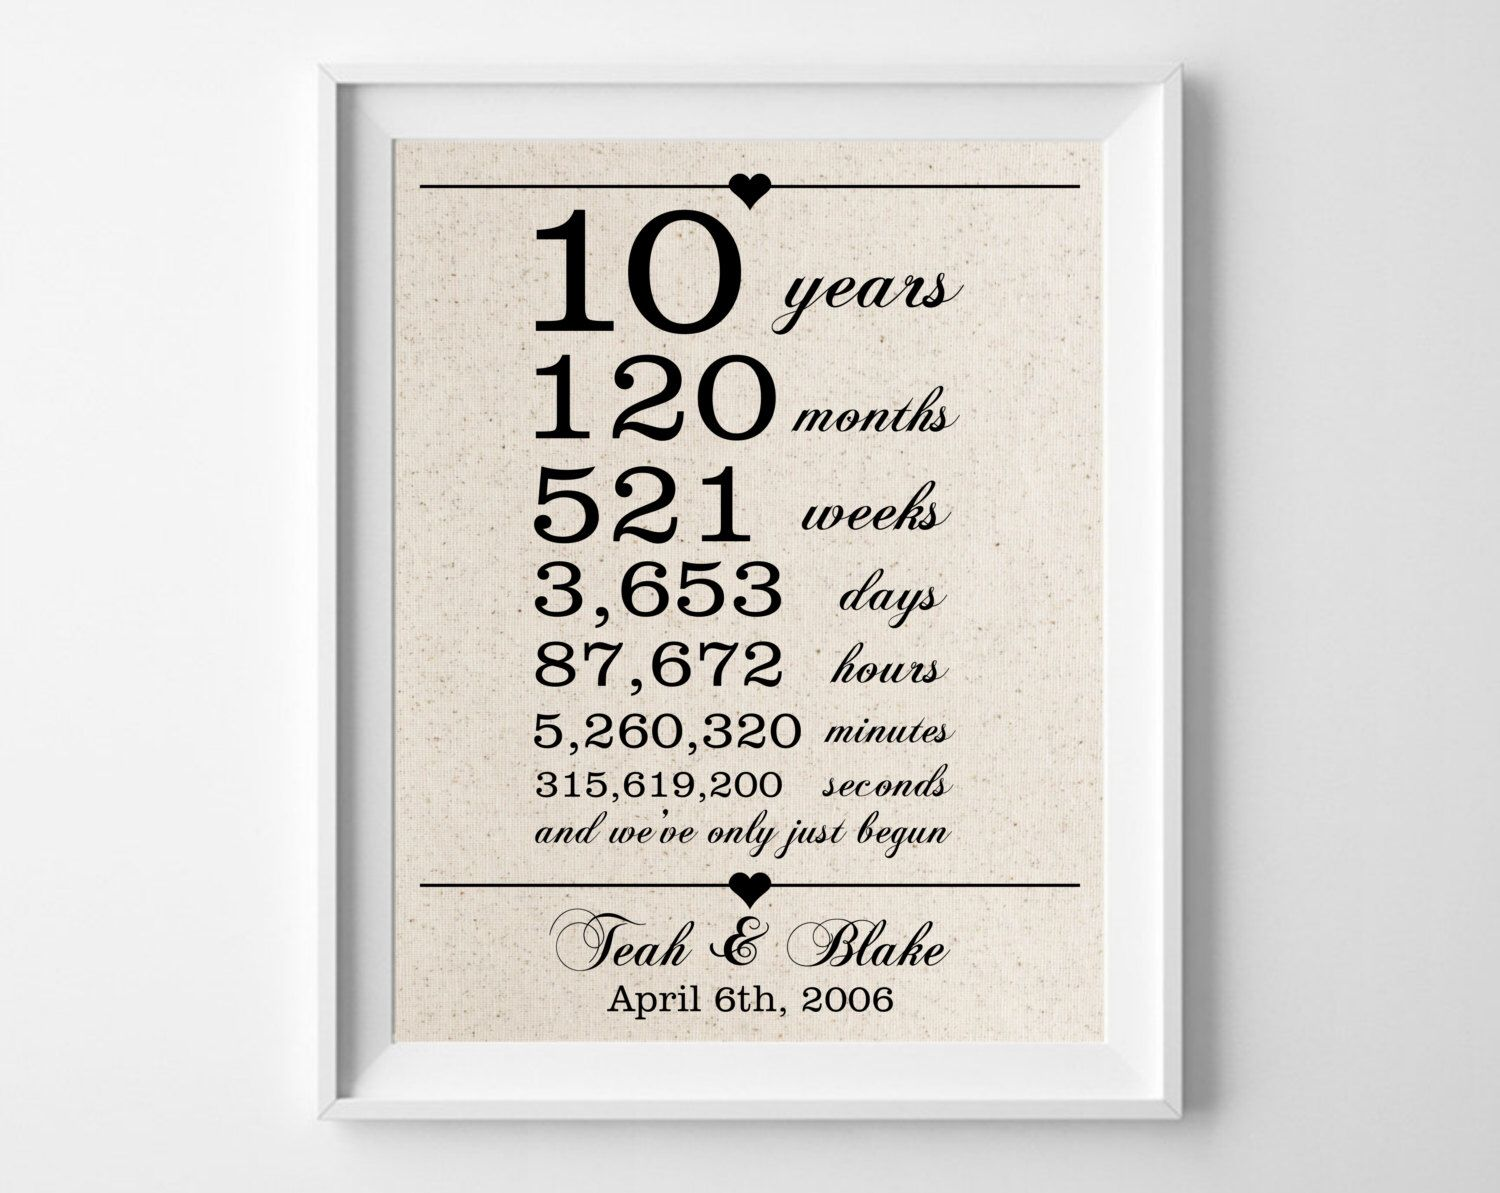 10 Years Together Cotton Gift Print 10th Anniversary Gifts 10 Year Anniversary Gift For Husband Wife 10th Wed Yubilej Muzha Tretya Godovshina Podarki Muzhu